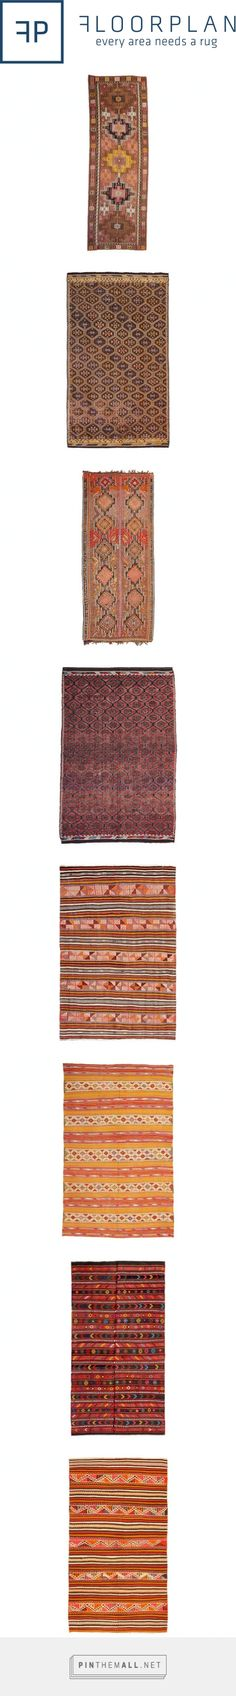 Turkish Kilims with PInk | Floorplan Rugs